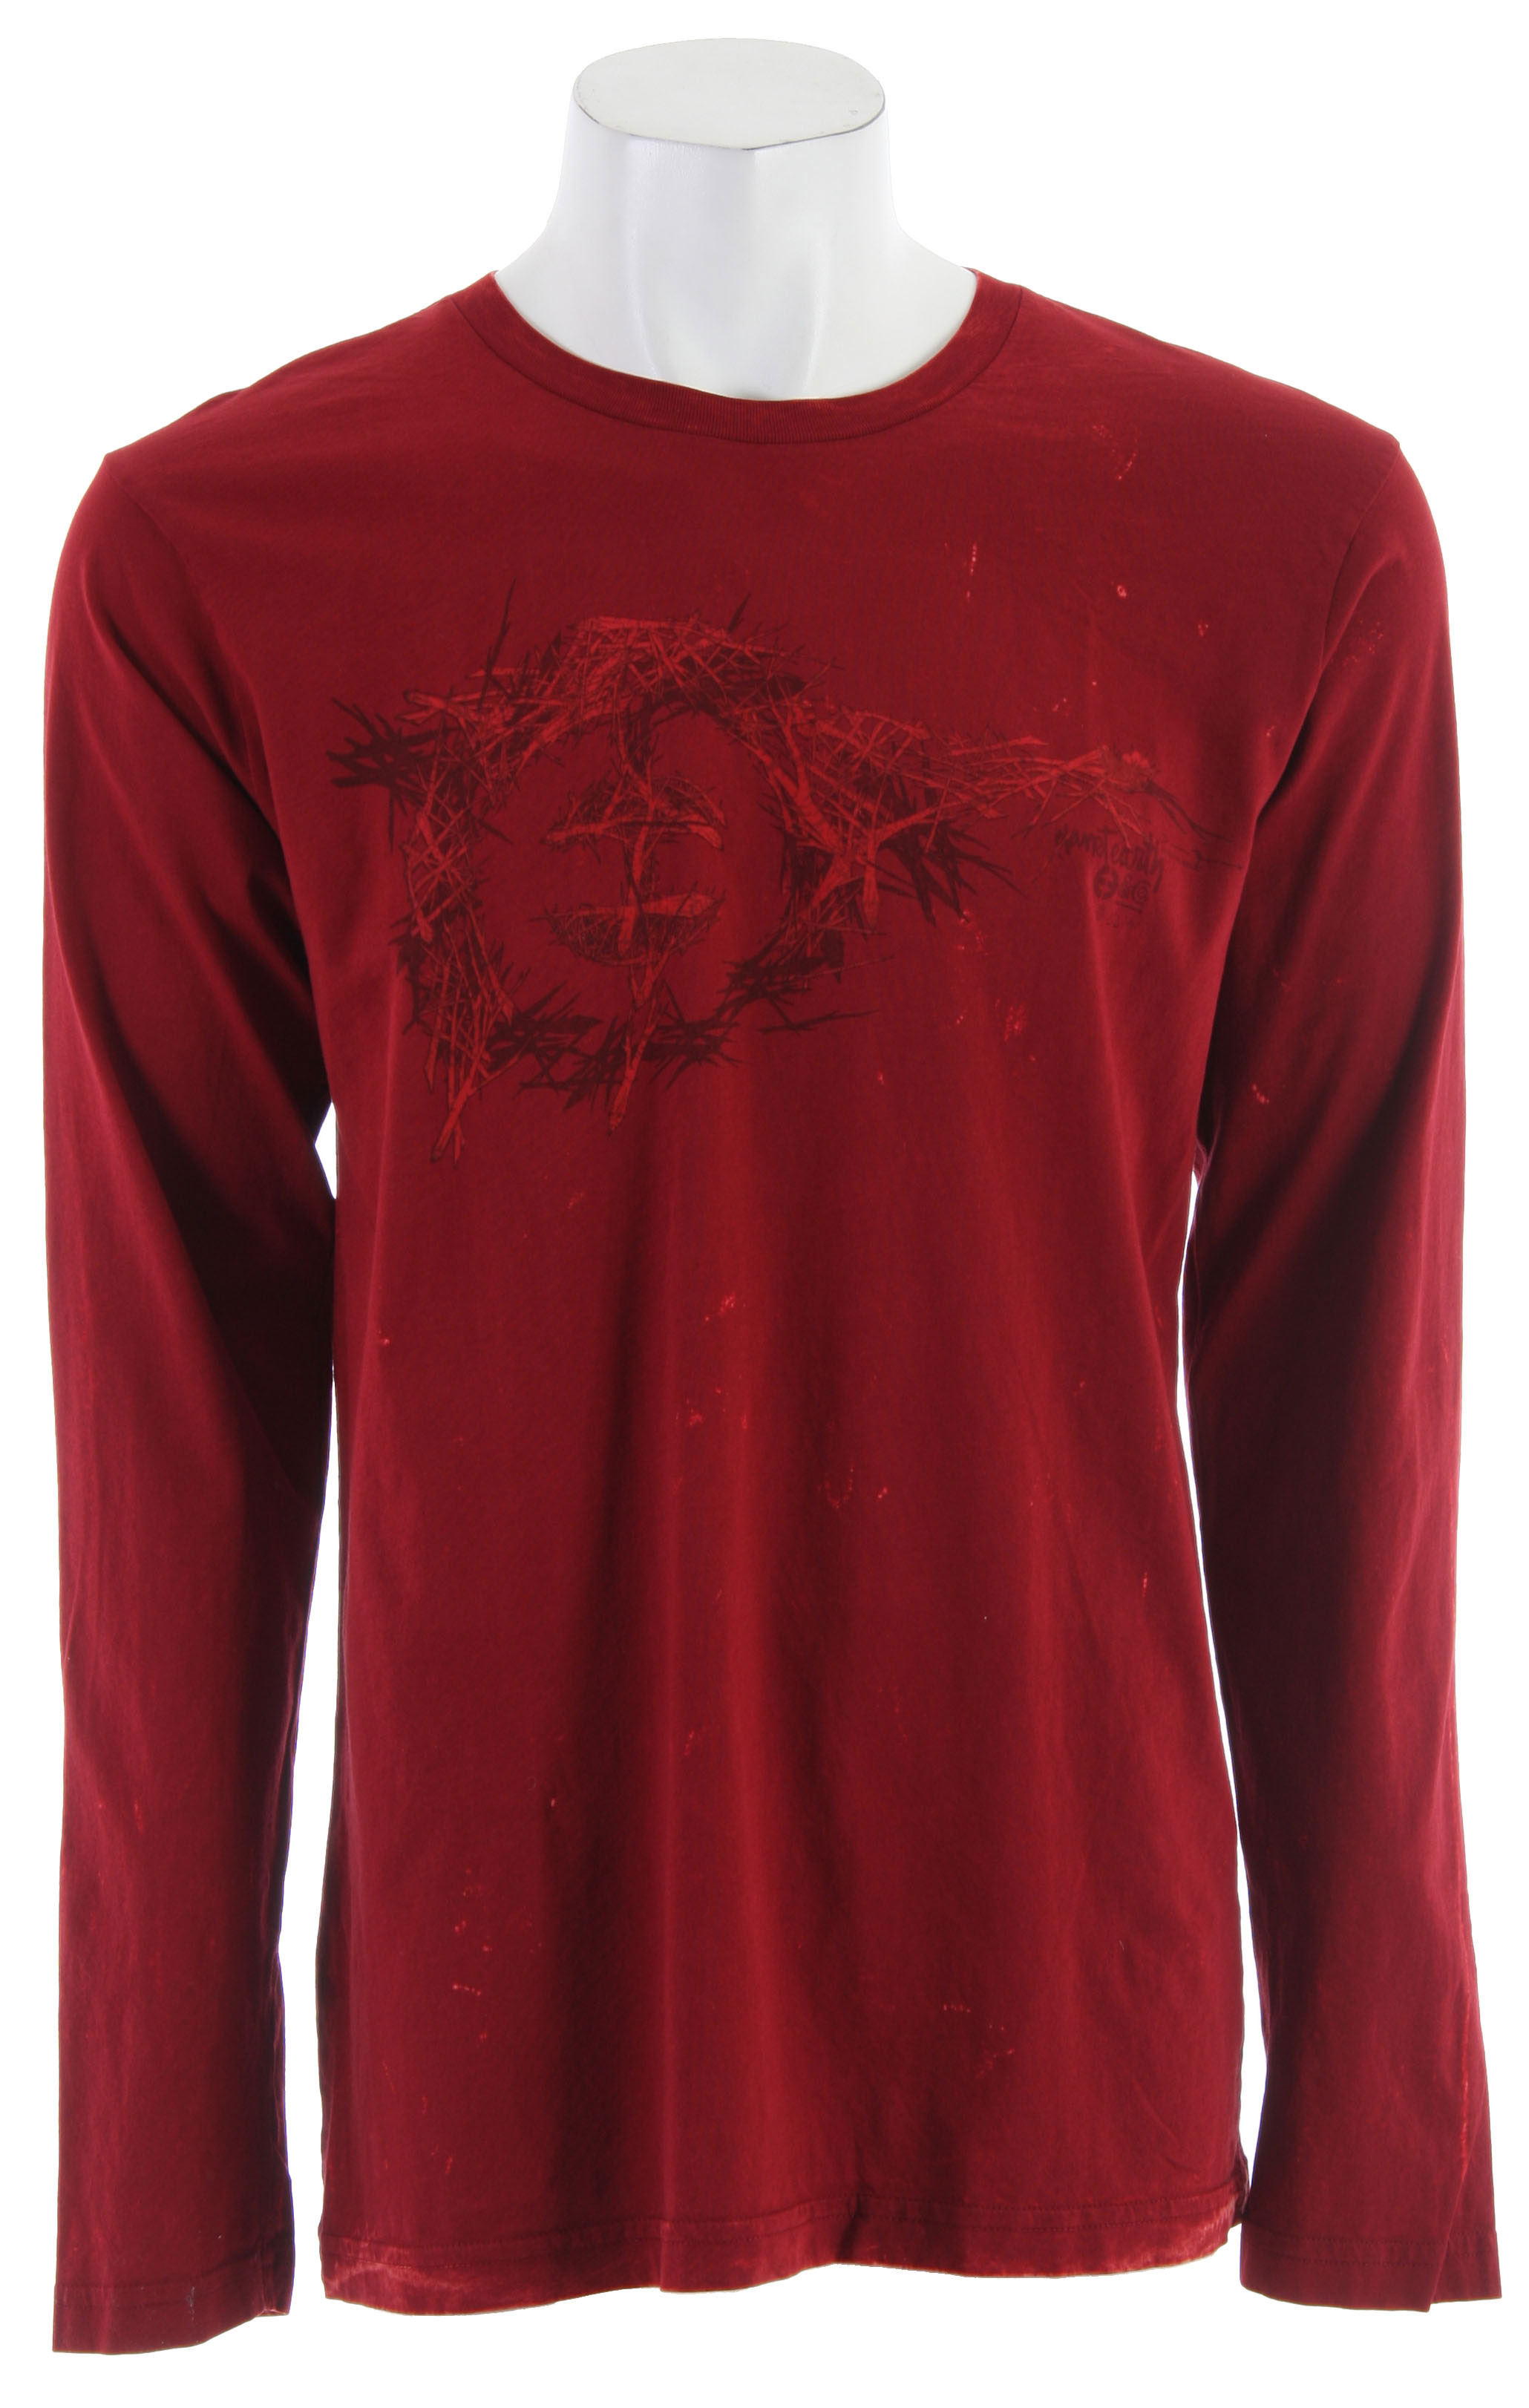 Key Features of The Planet Earth Muscat L/S T-Shirt: Regular Fit Crew Neck Long Sleeve Renewable or recycled materials in every piece - $9.95